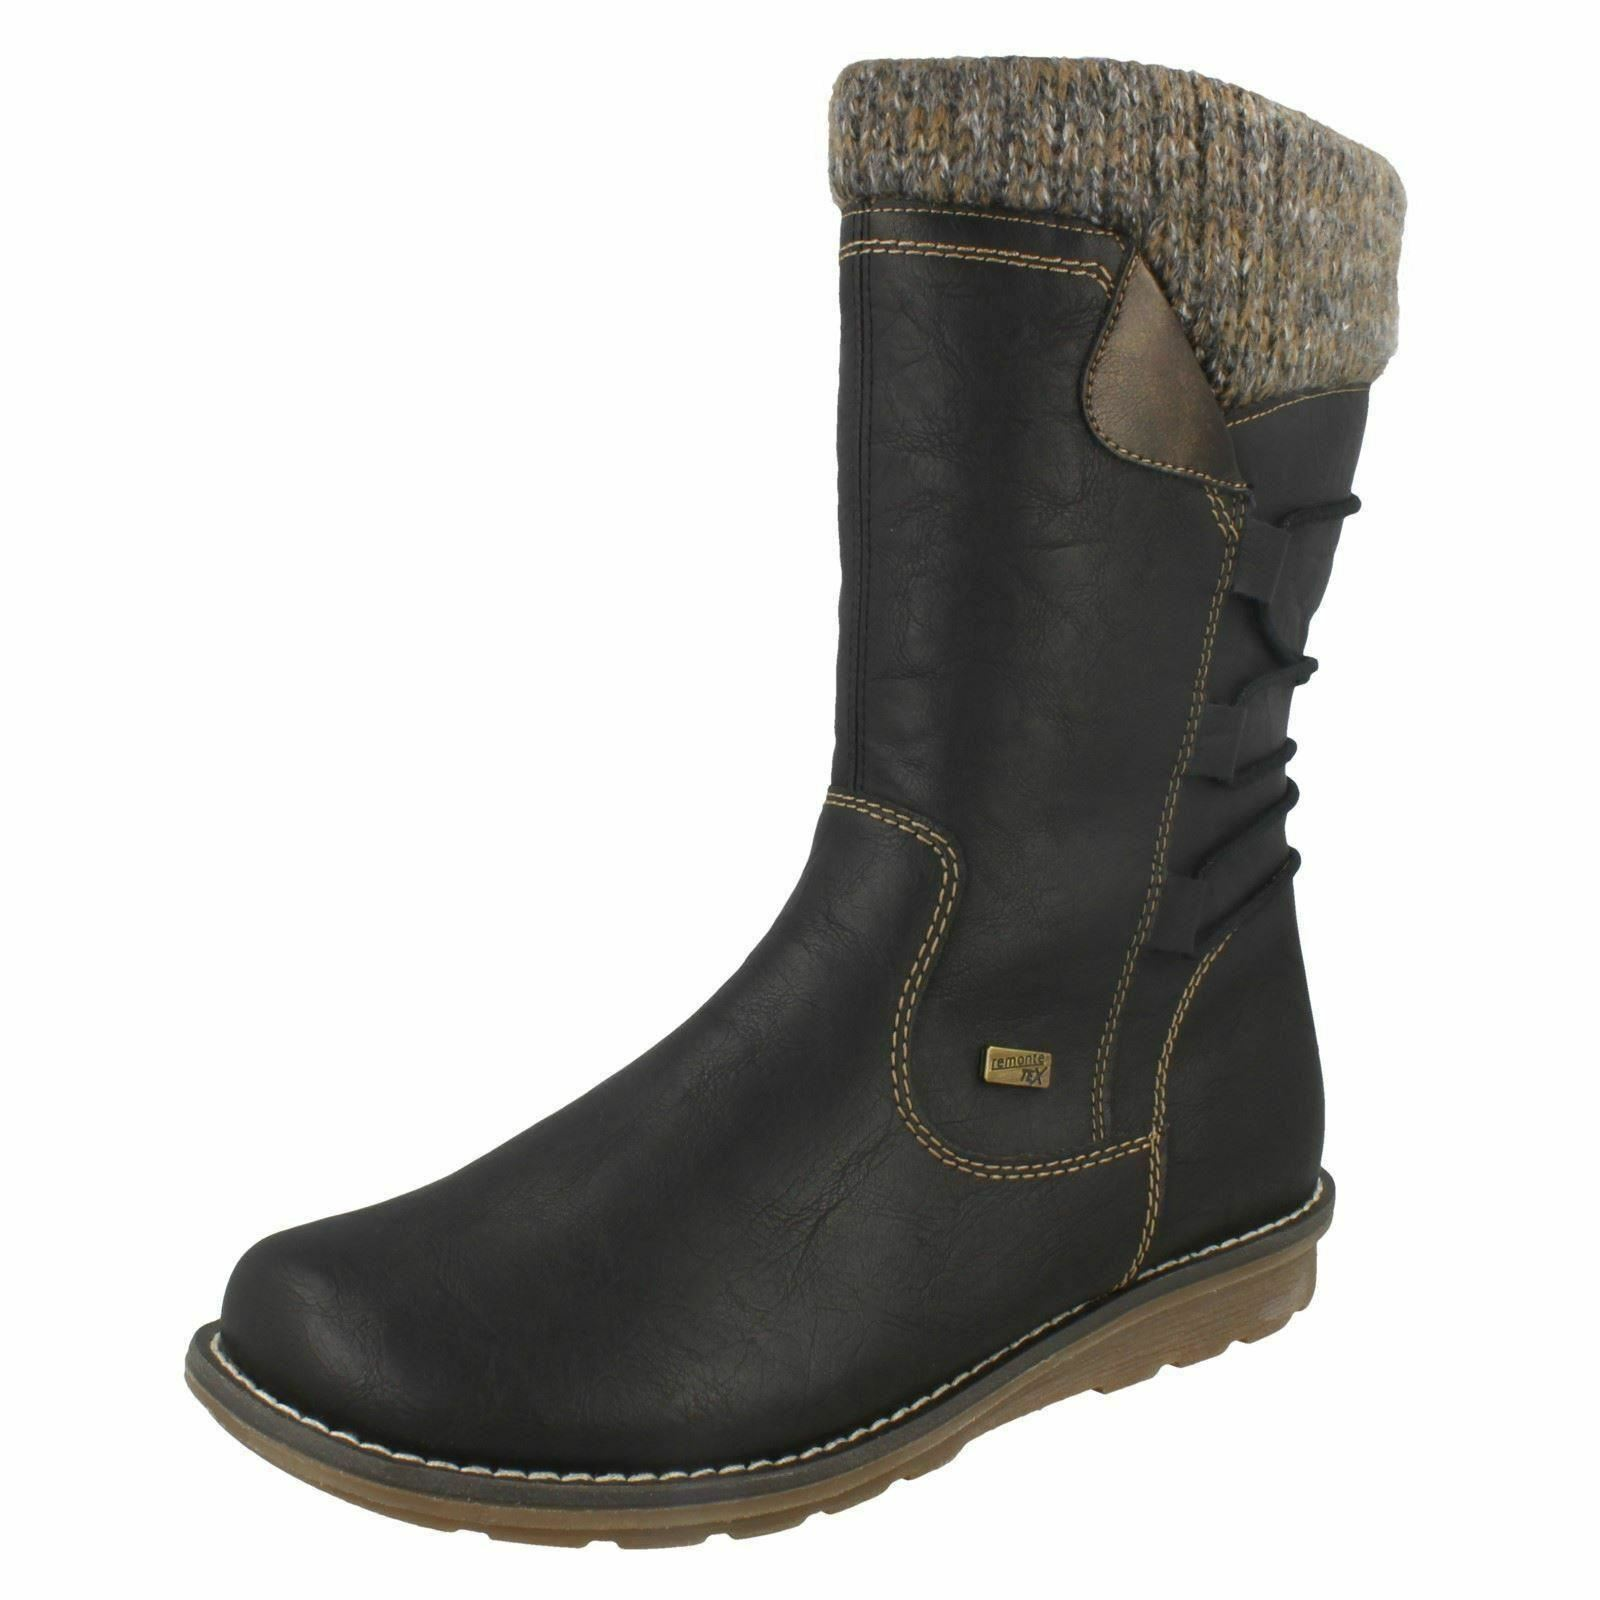 Ladies Remonte R1094 Synthetic Zip Up Mid-Calf Boots With Lambswool Linings